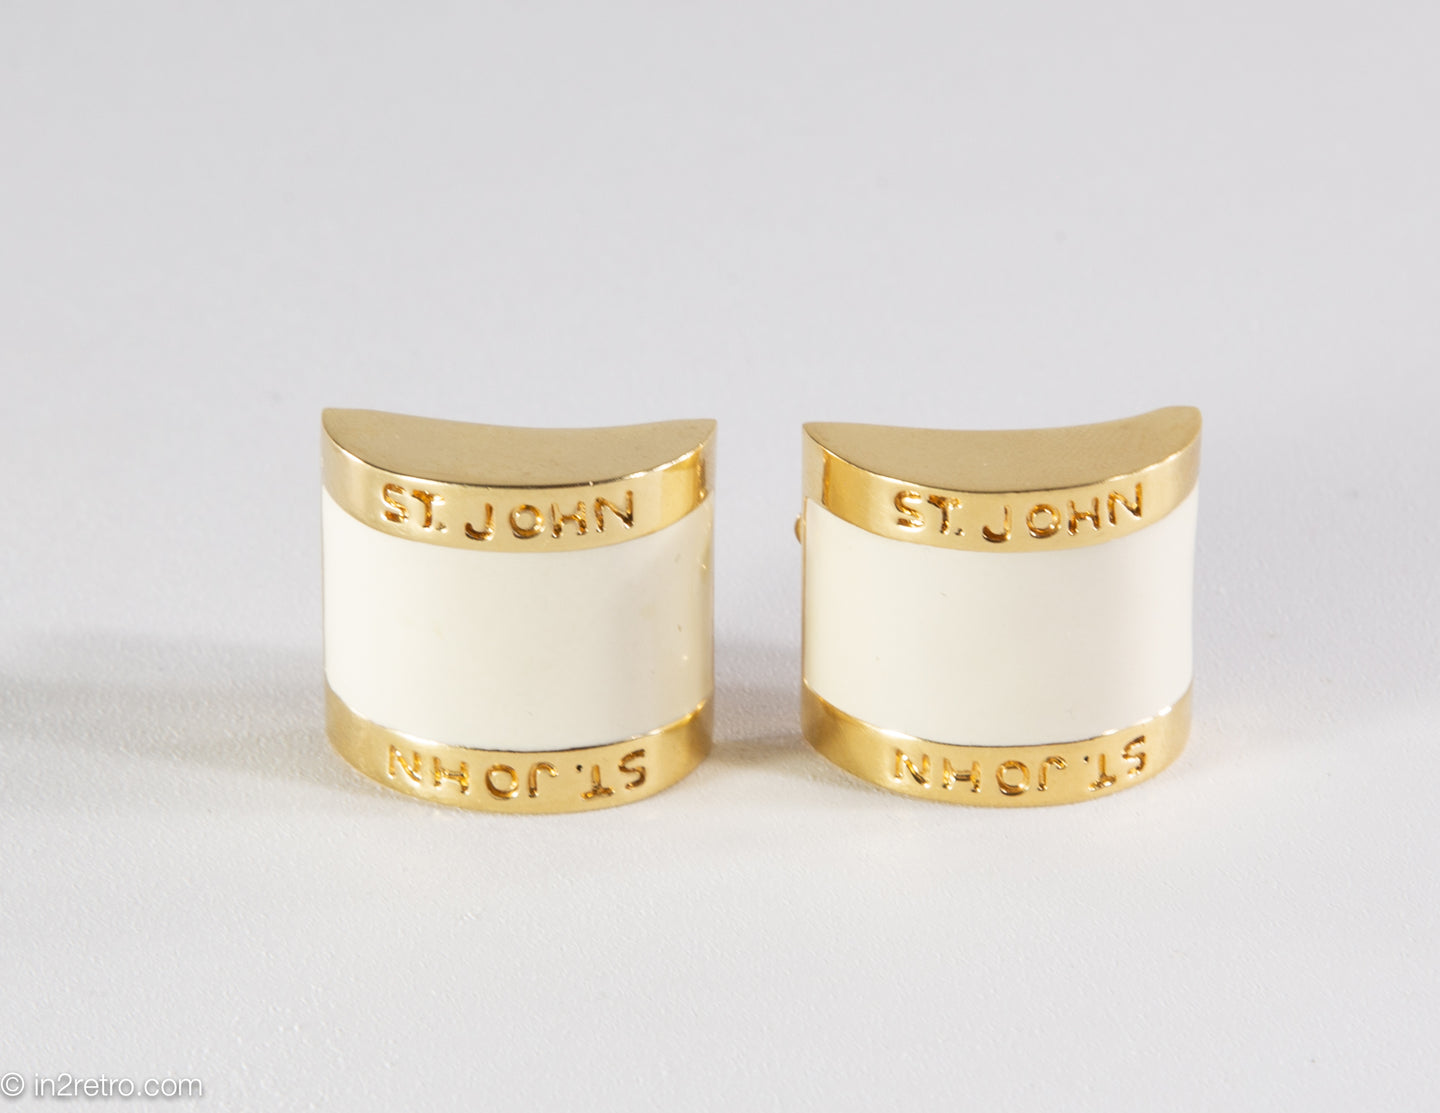 VINTAGE ST. JOHN CLIP CREAM ENAMEL GOLD TONE EARRINGS - 1980s